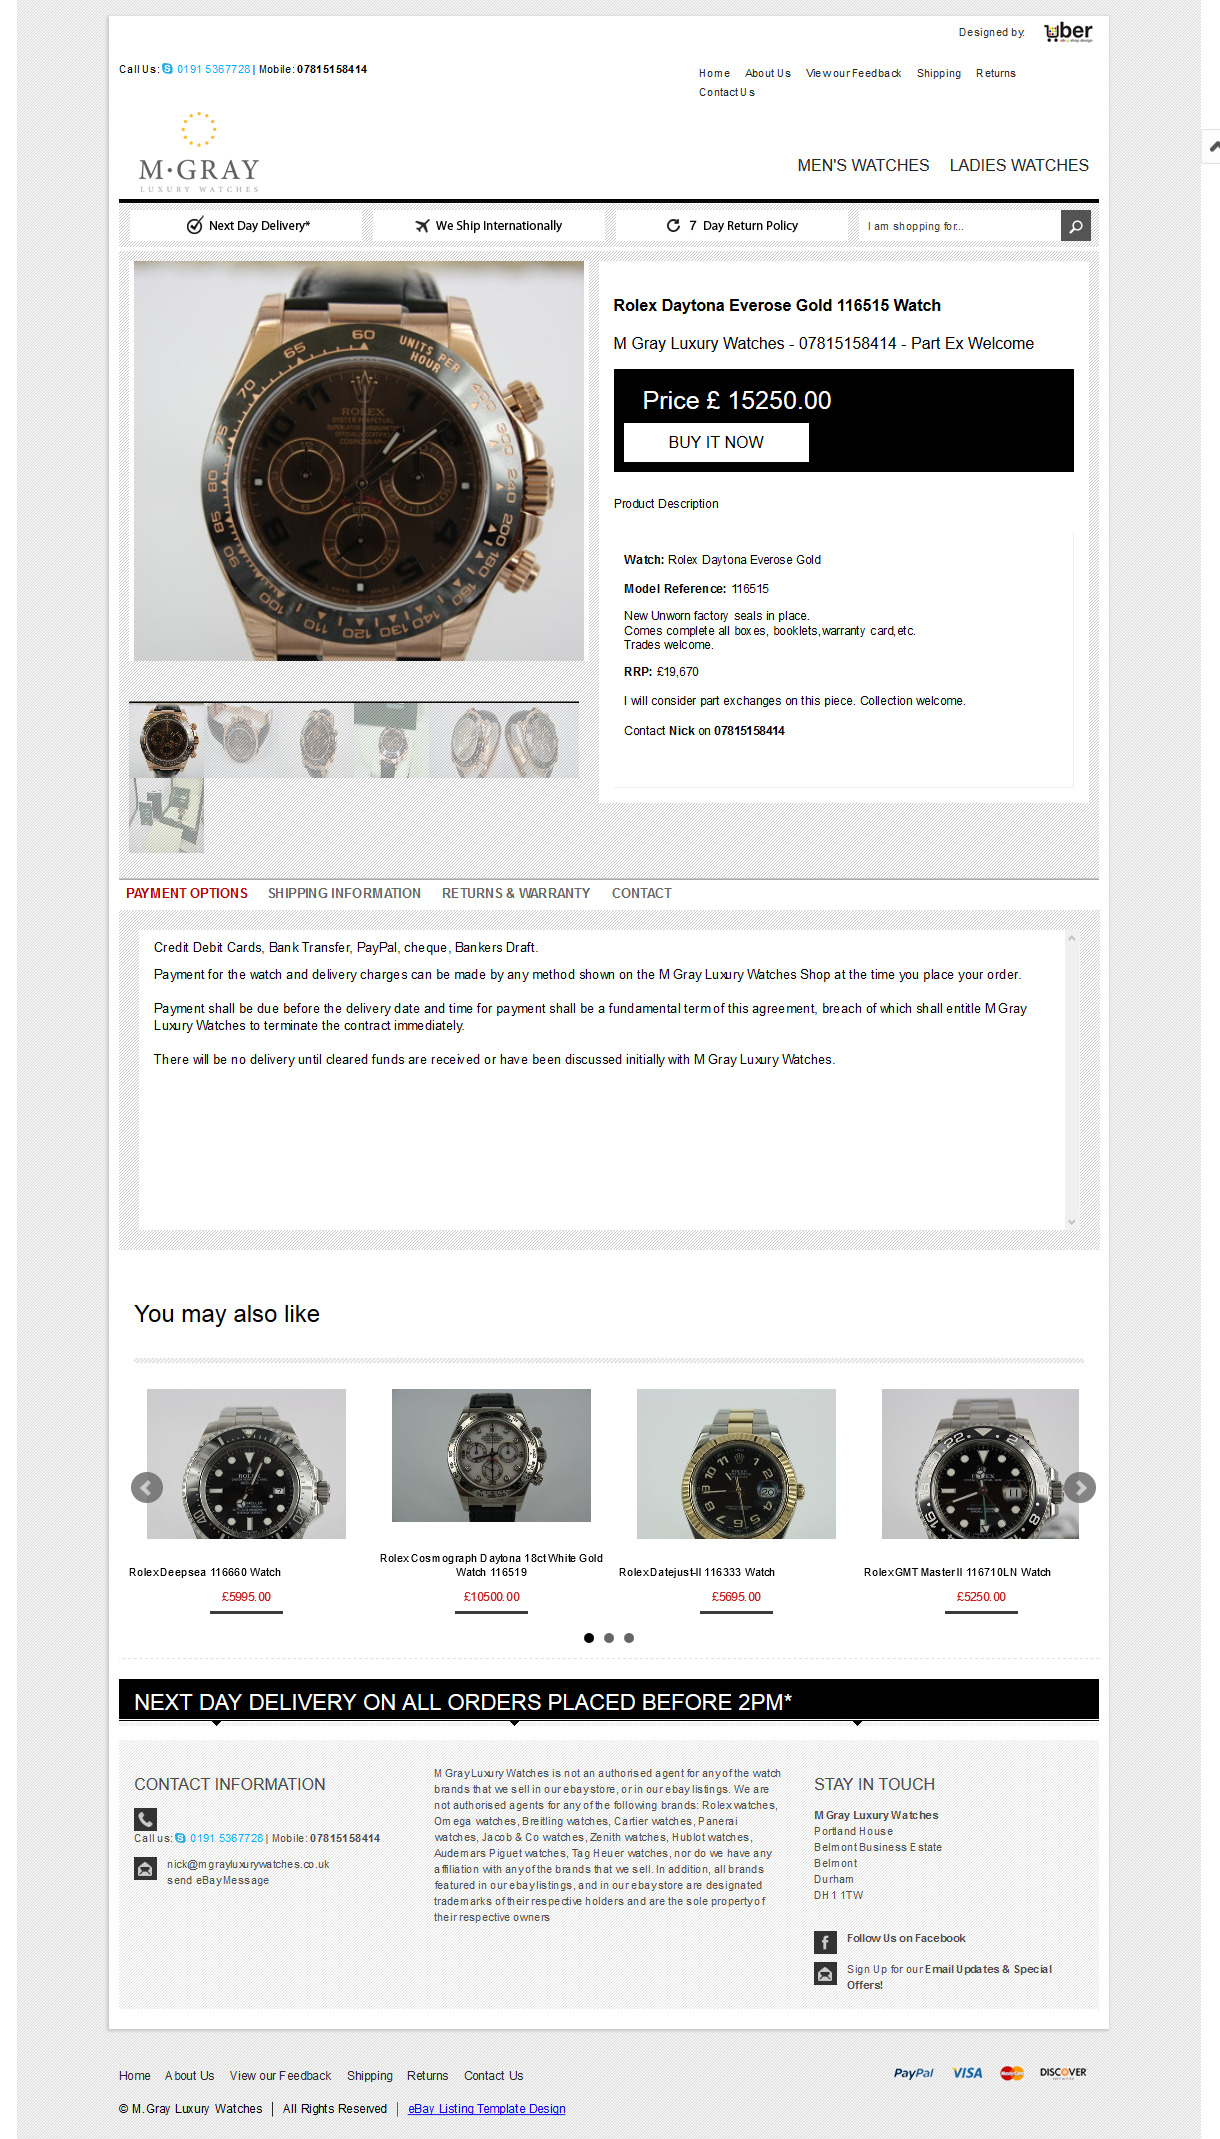 m gray luxury watches ebay shop design item template desktop